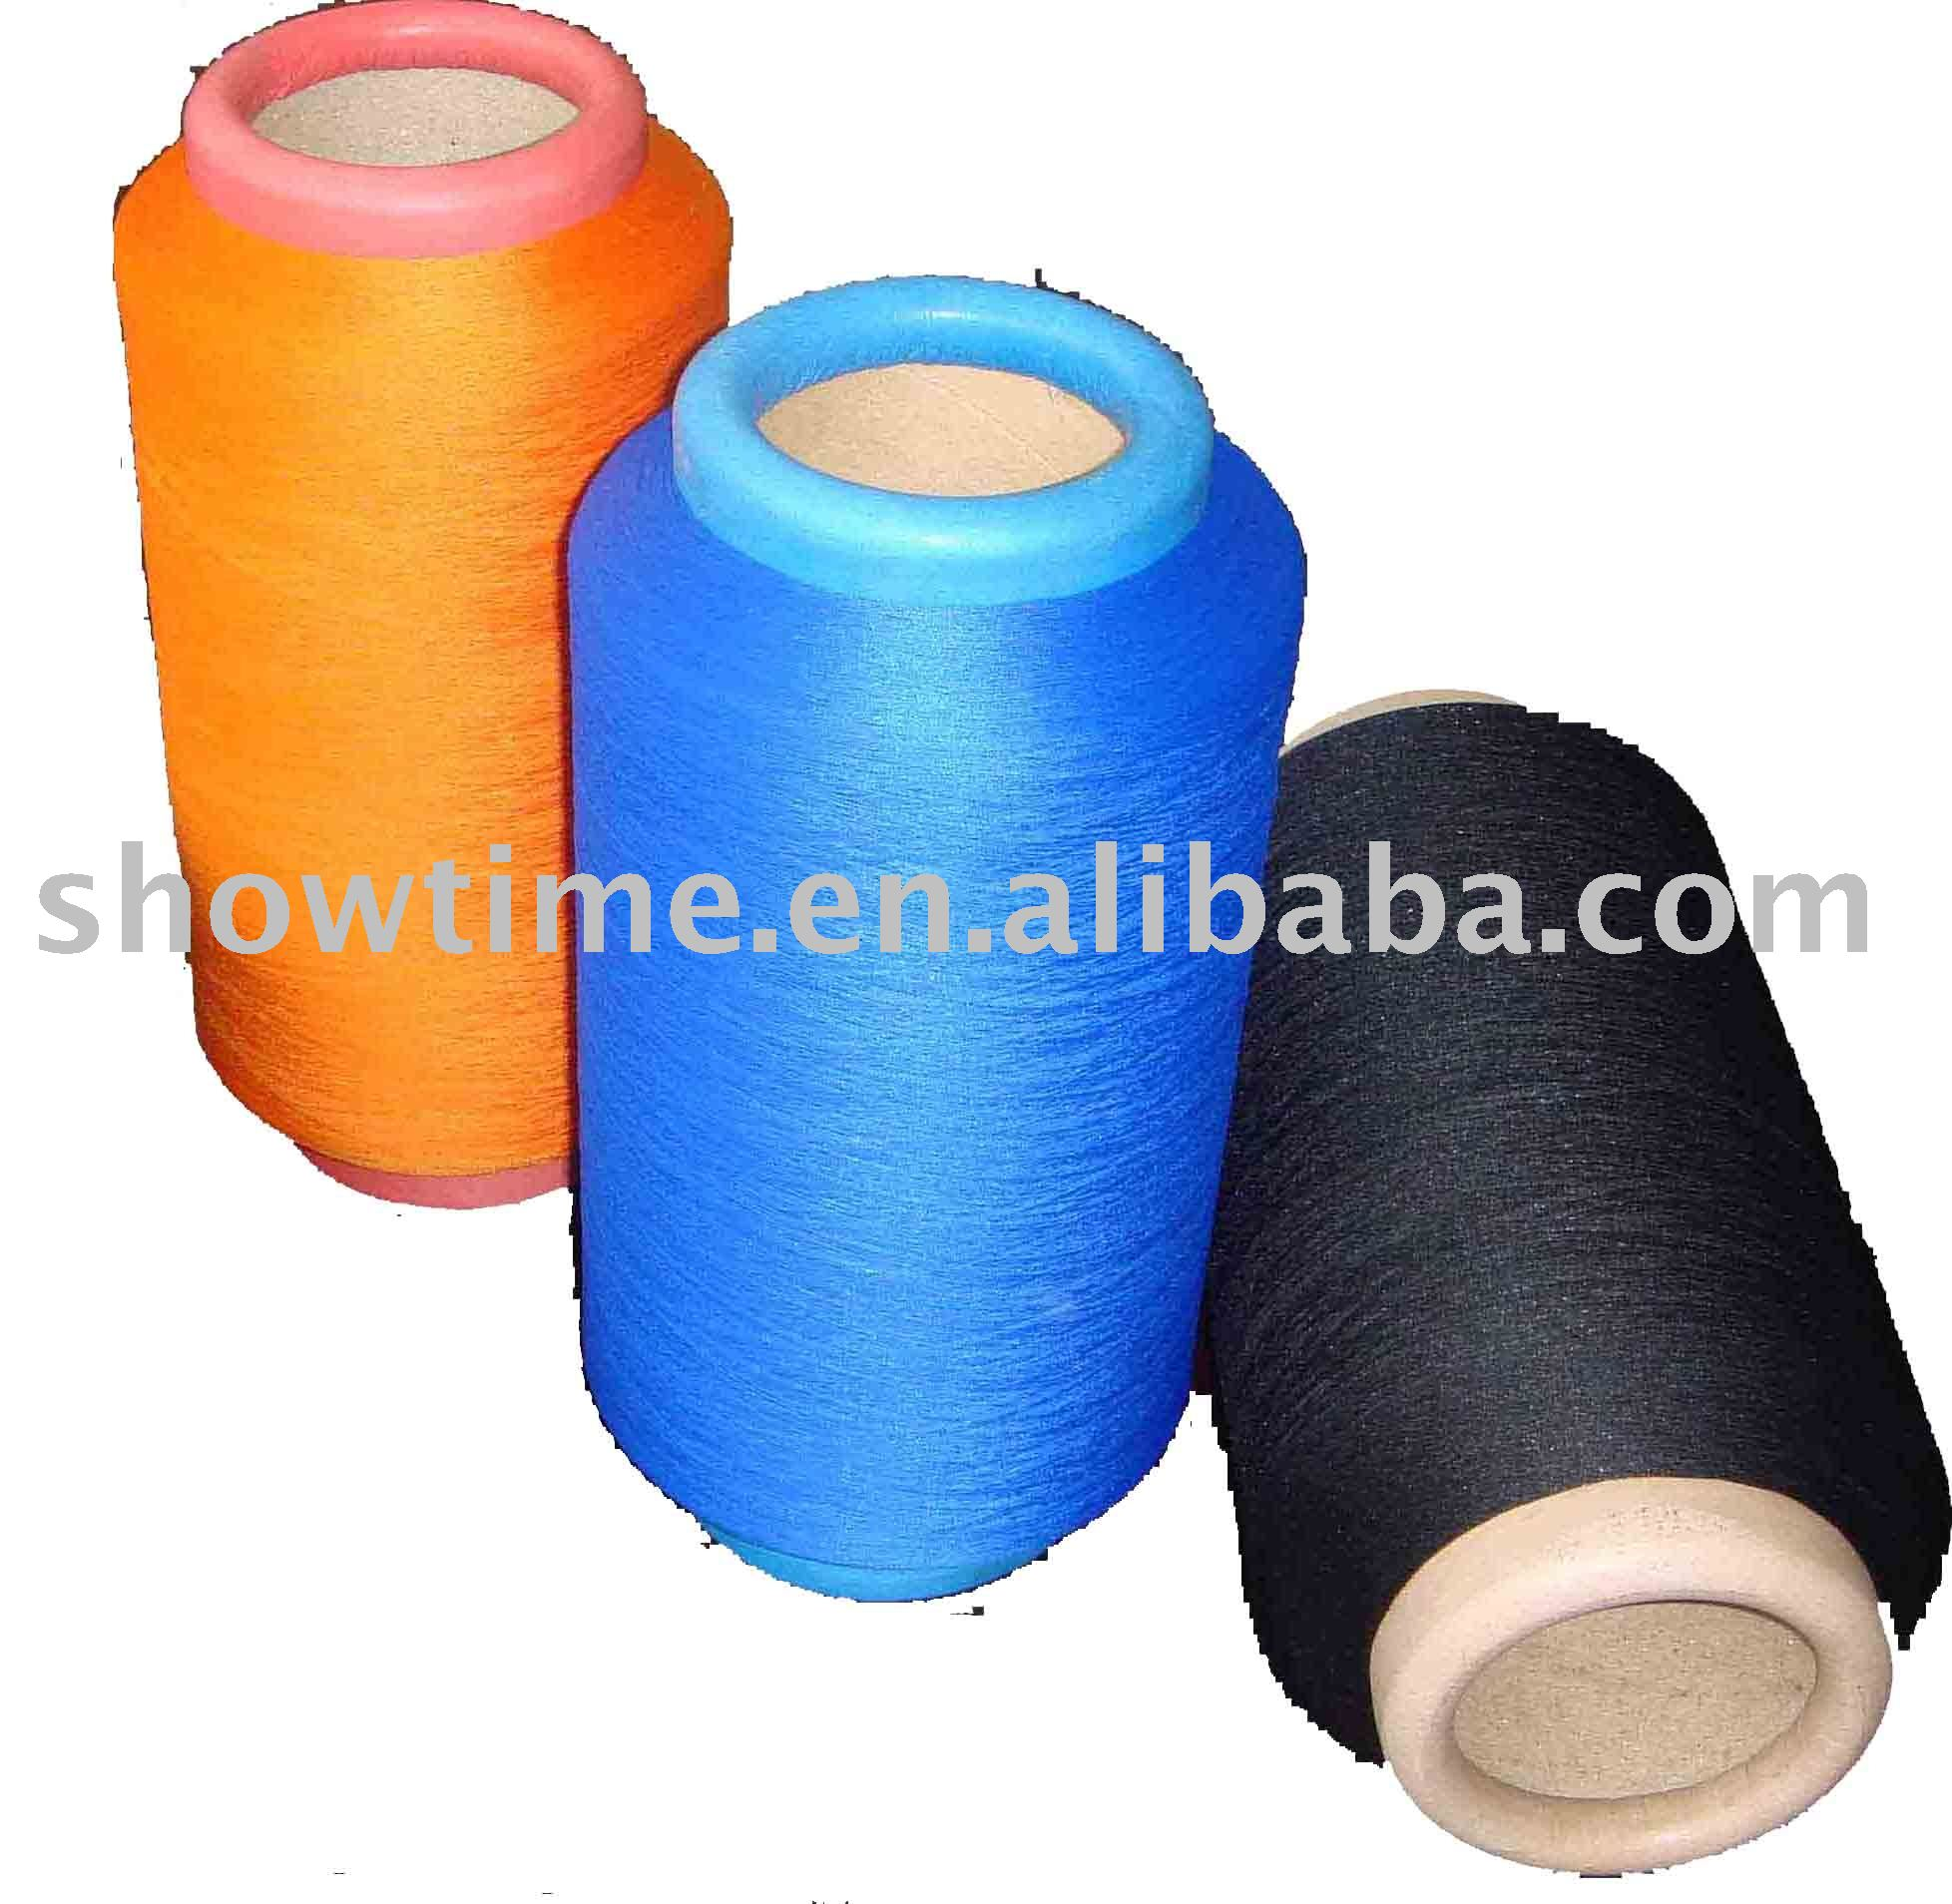 Nylon Covering Spandex Yarn